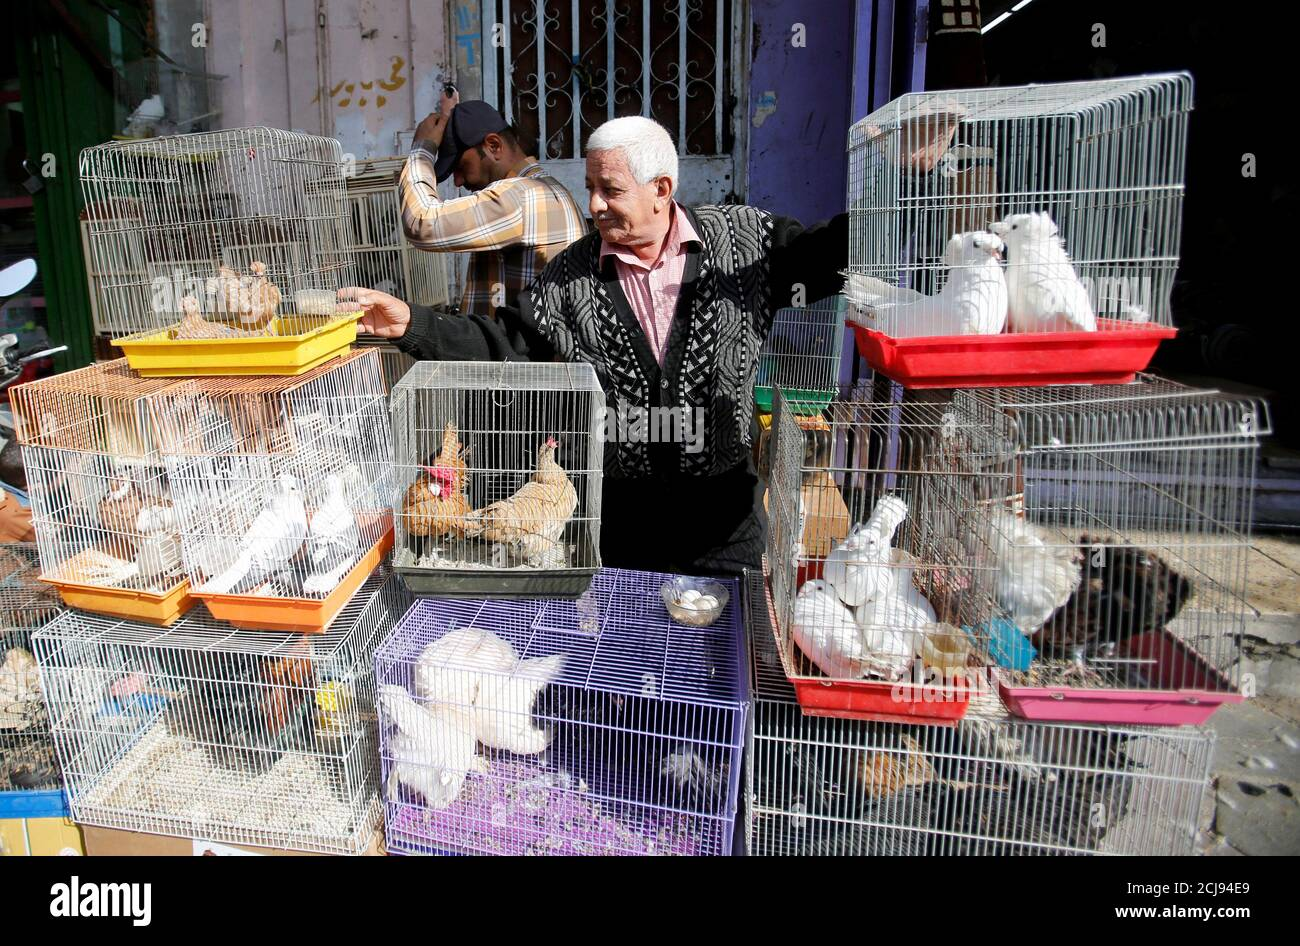 A man sells animals at the Ghazal pet market in Baghdad, Iraq November 17, 2017. REUTERS/Khalid Al-Mousily Stock Photo